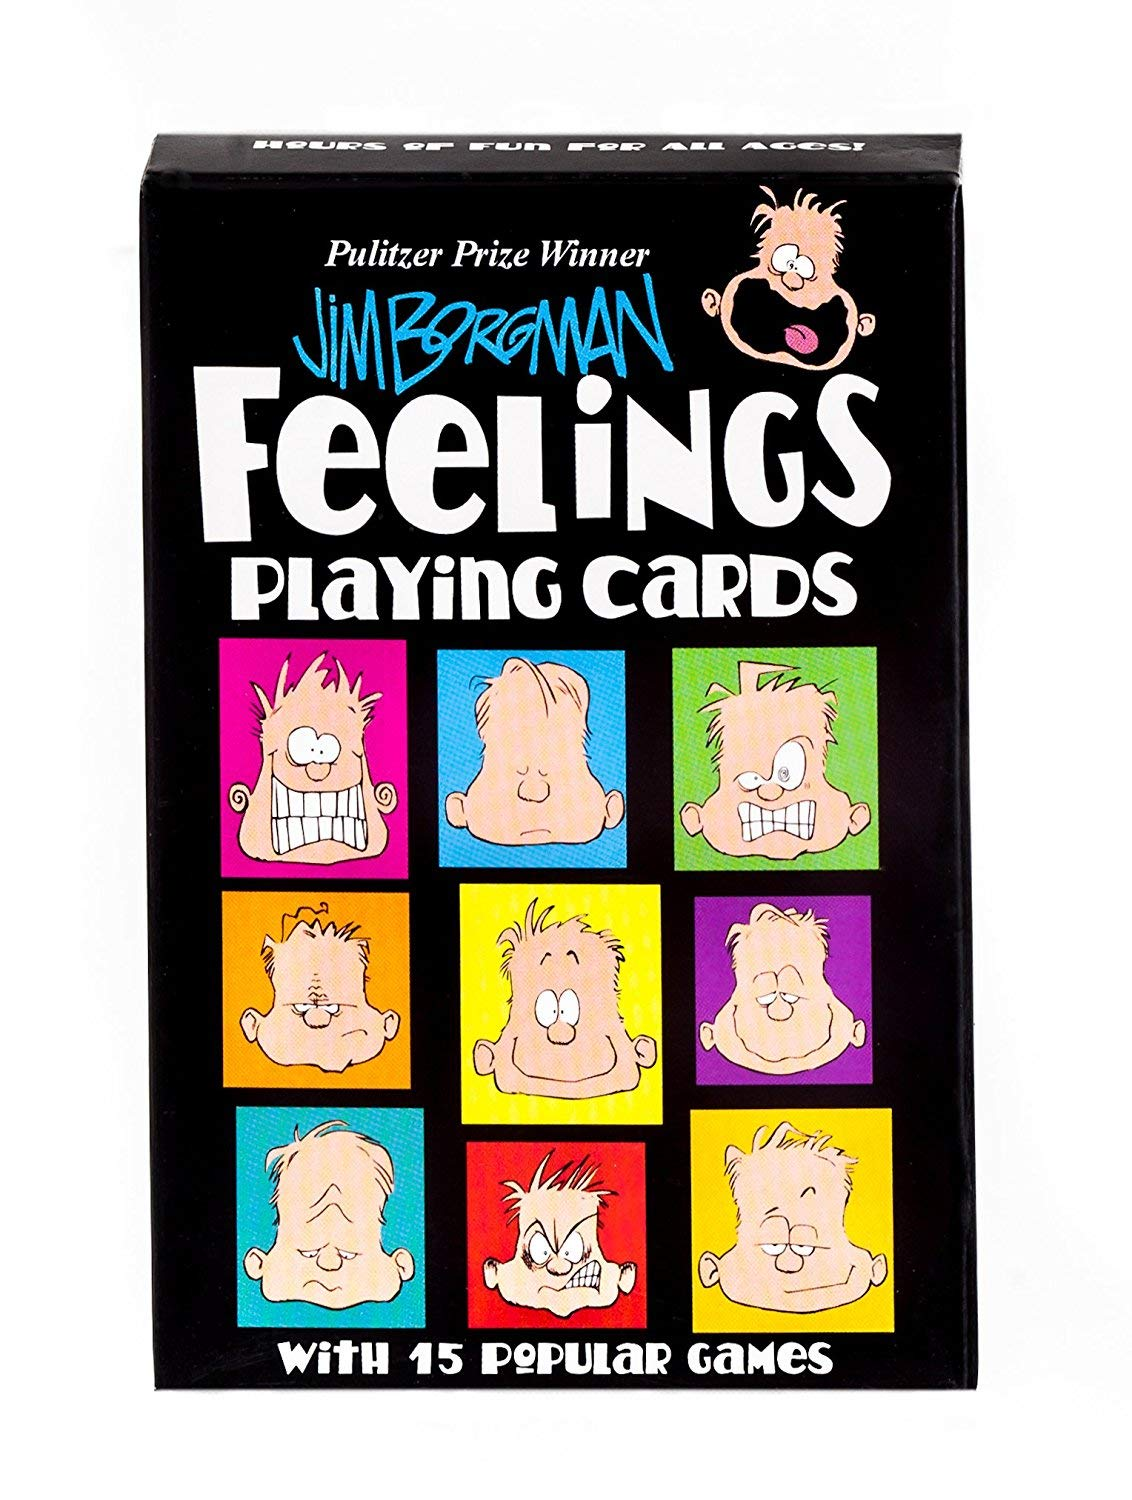 Feelings Playing Cards by Jim Borgman Pulitzer Prize Winner by Time Promotions